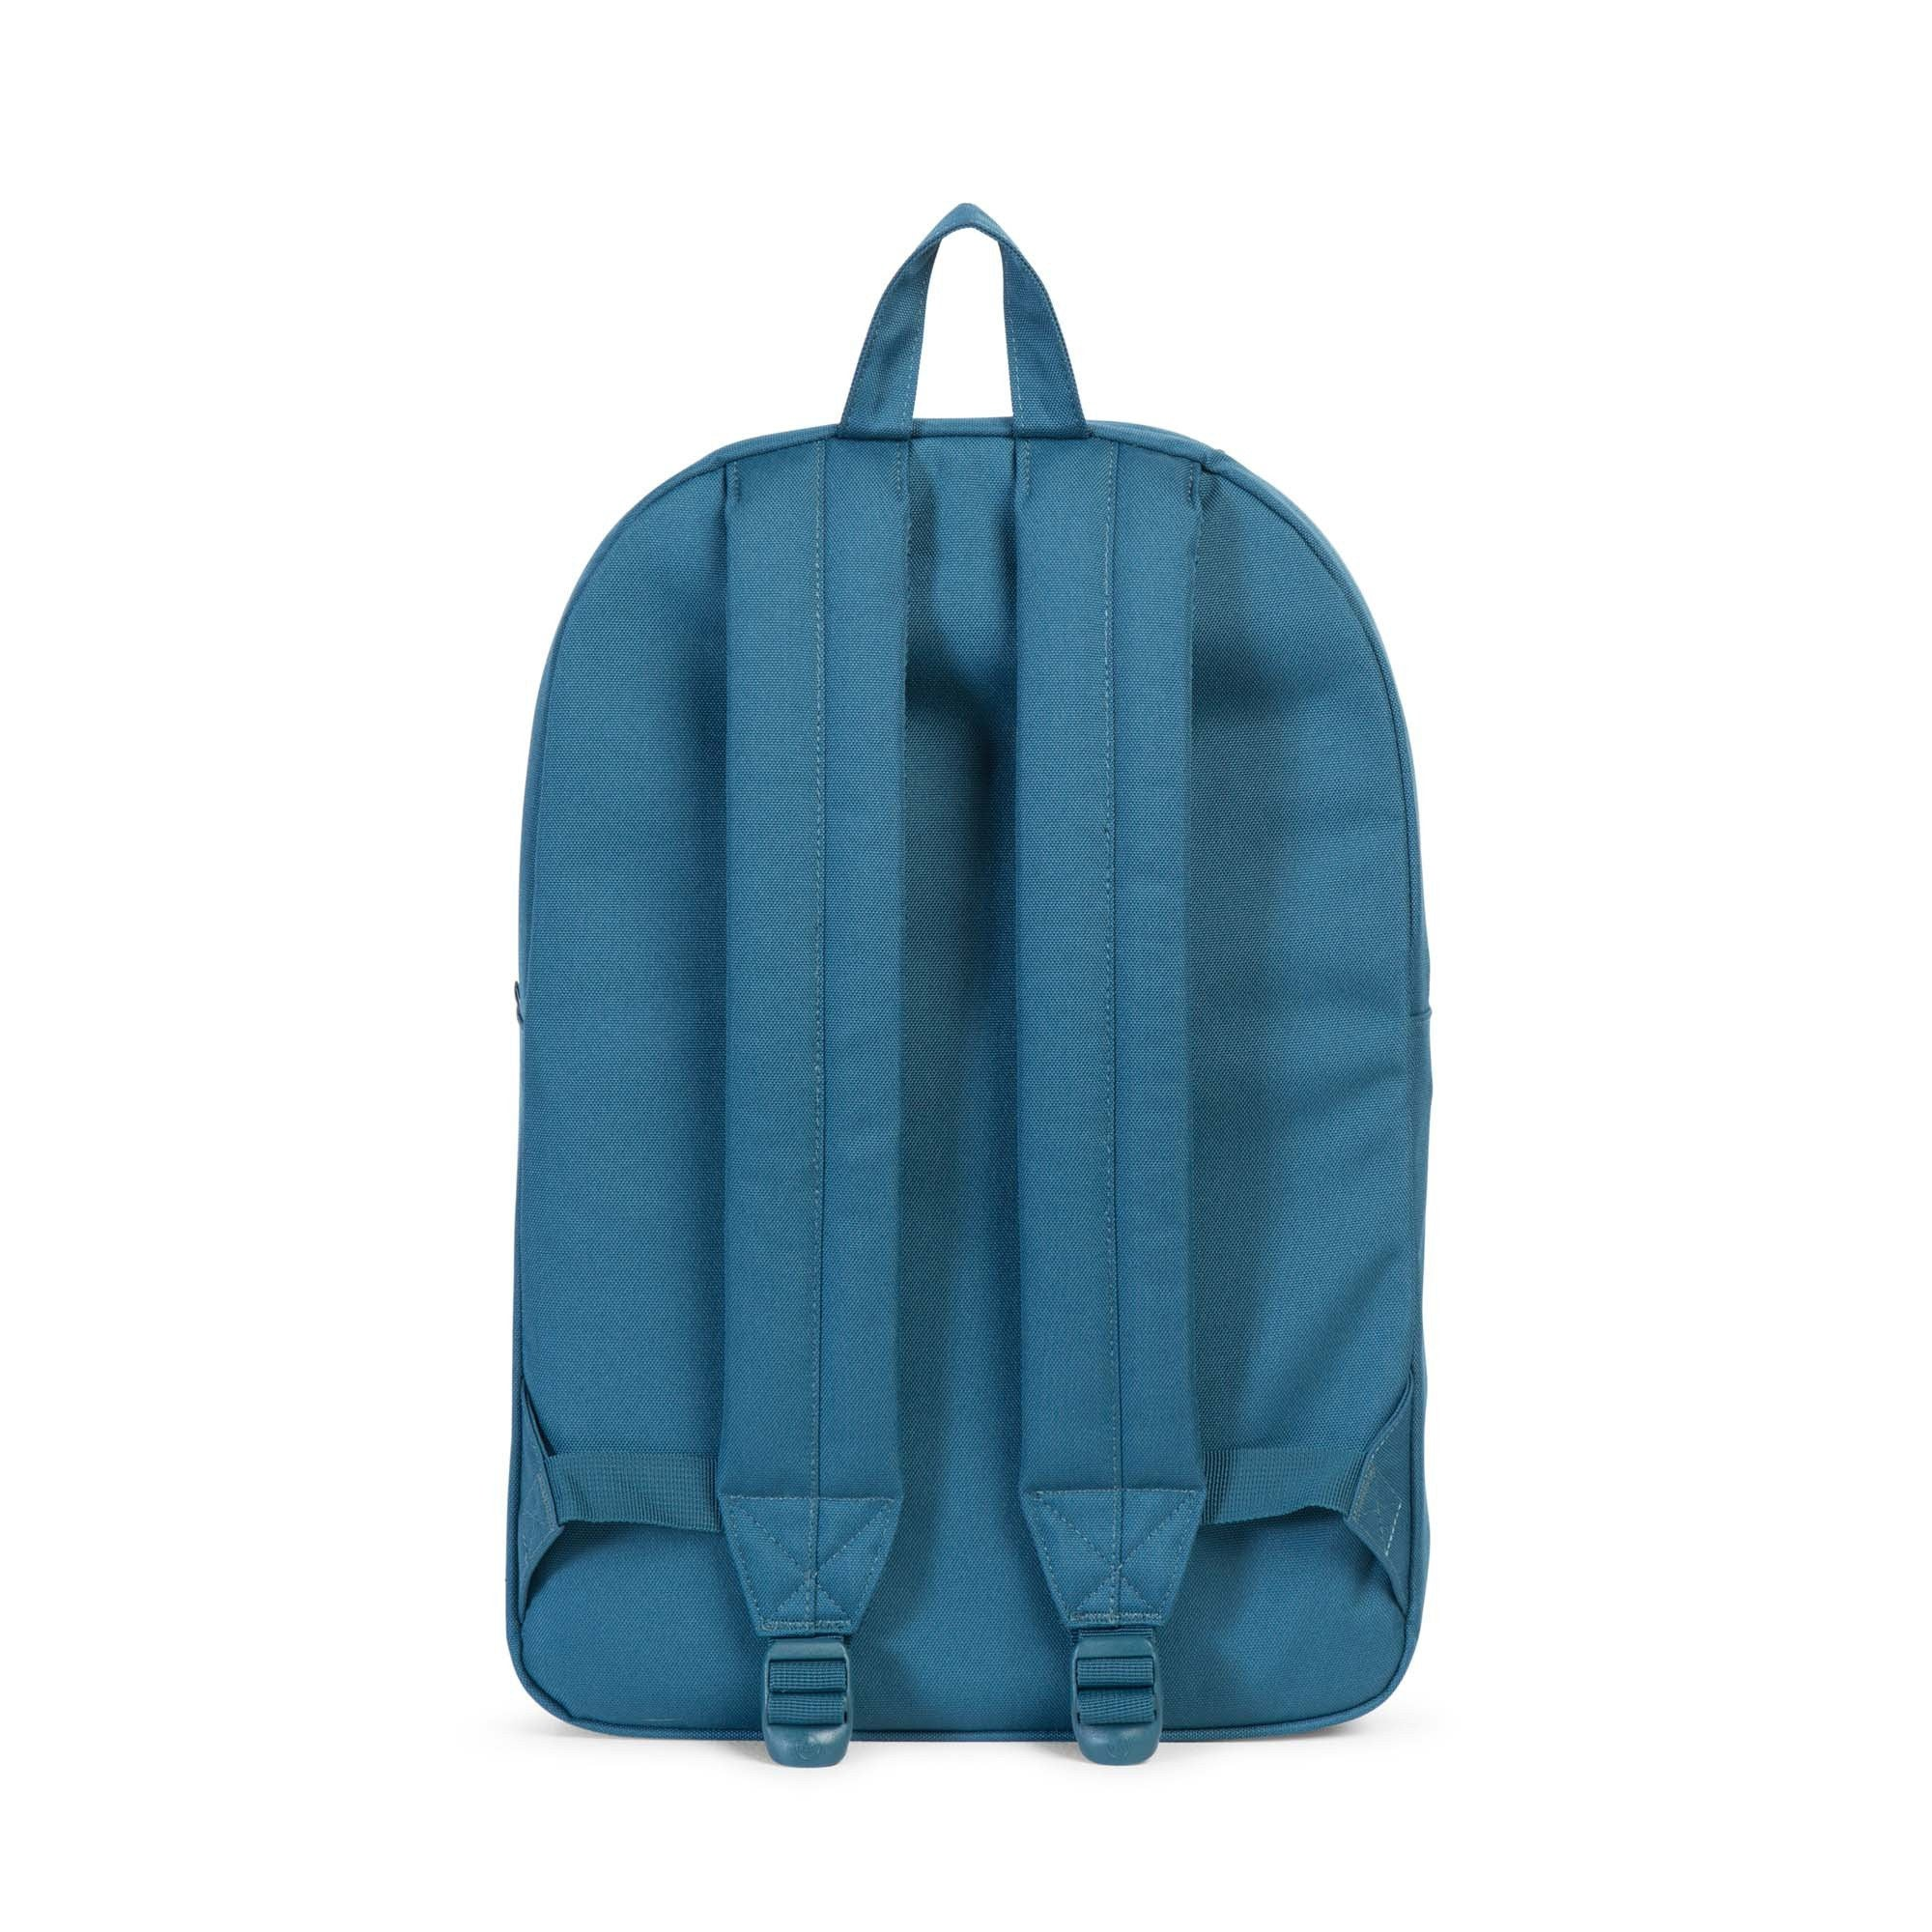 Herschel Supply Co. - Classic Backpack, Indian Teal - The Giant Peach - 4